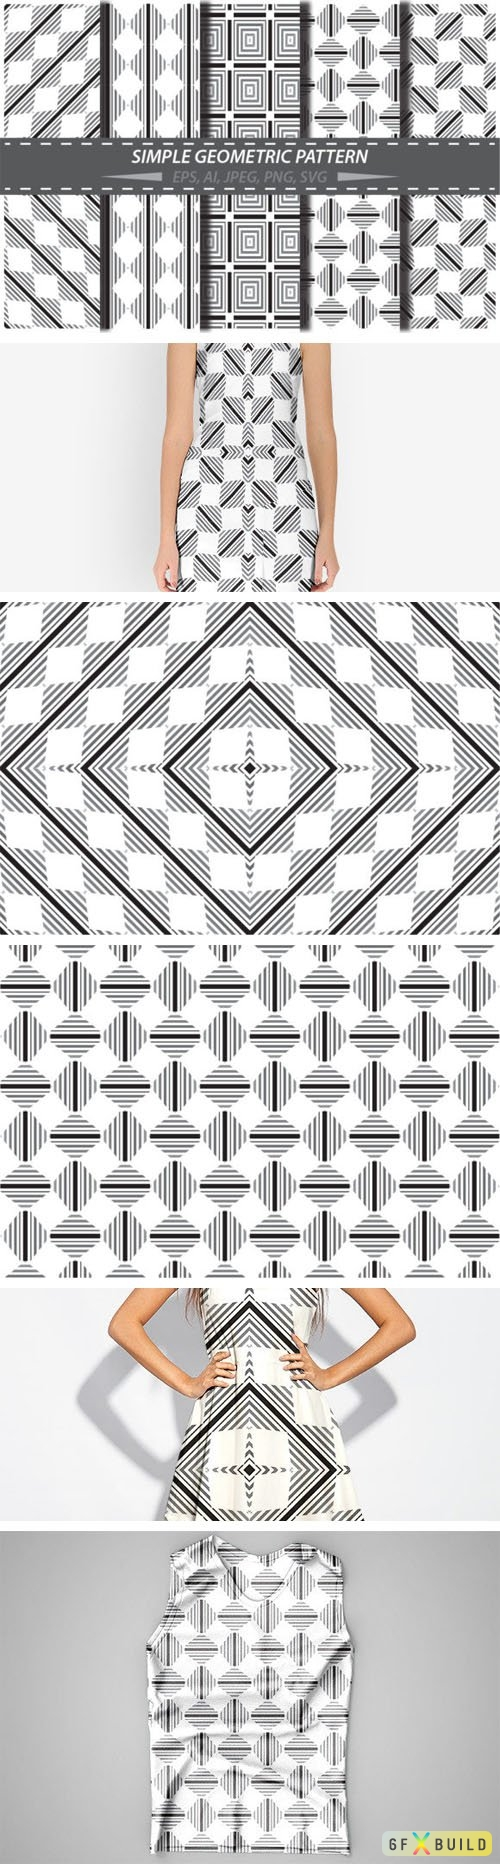 Geometric Patterns - Vector Shapes and Backgrounds